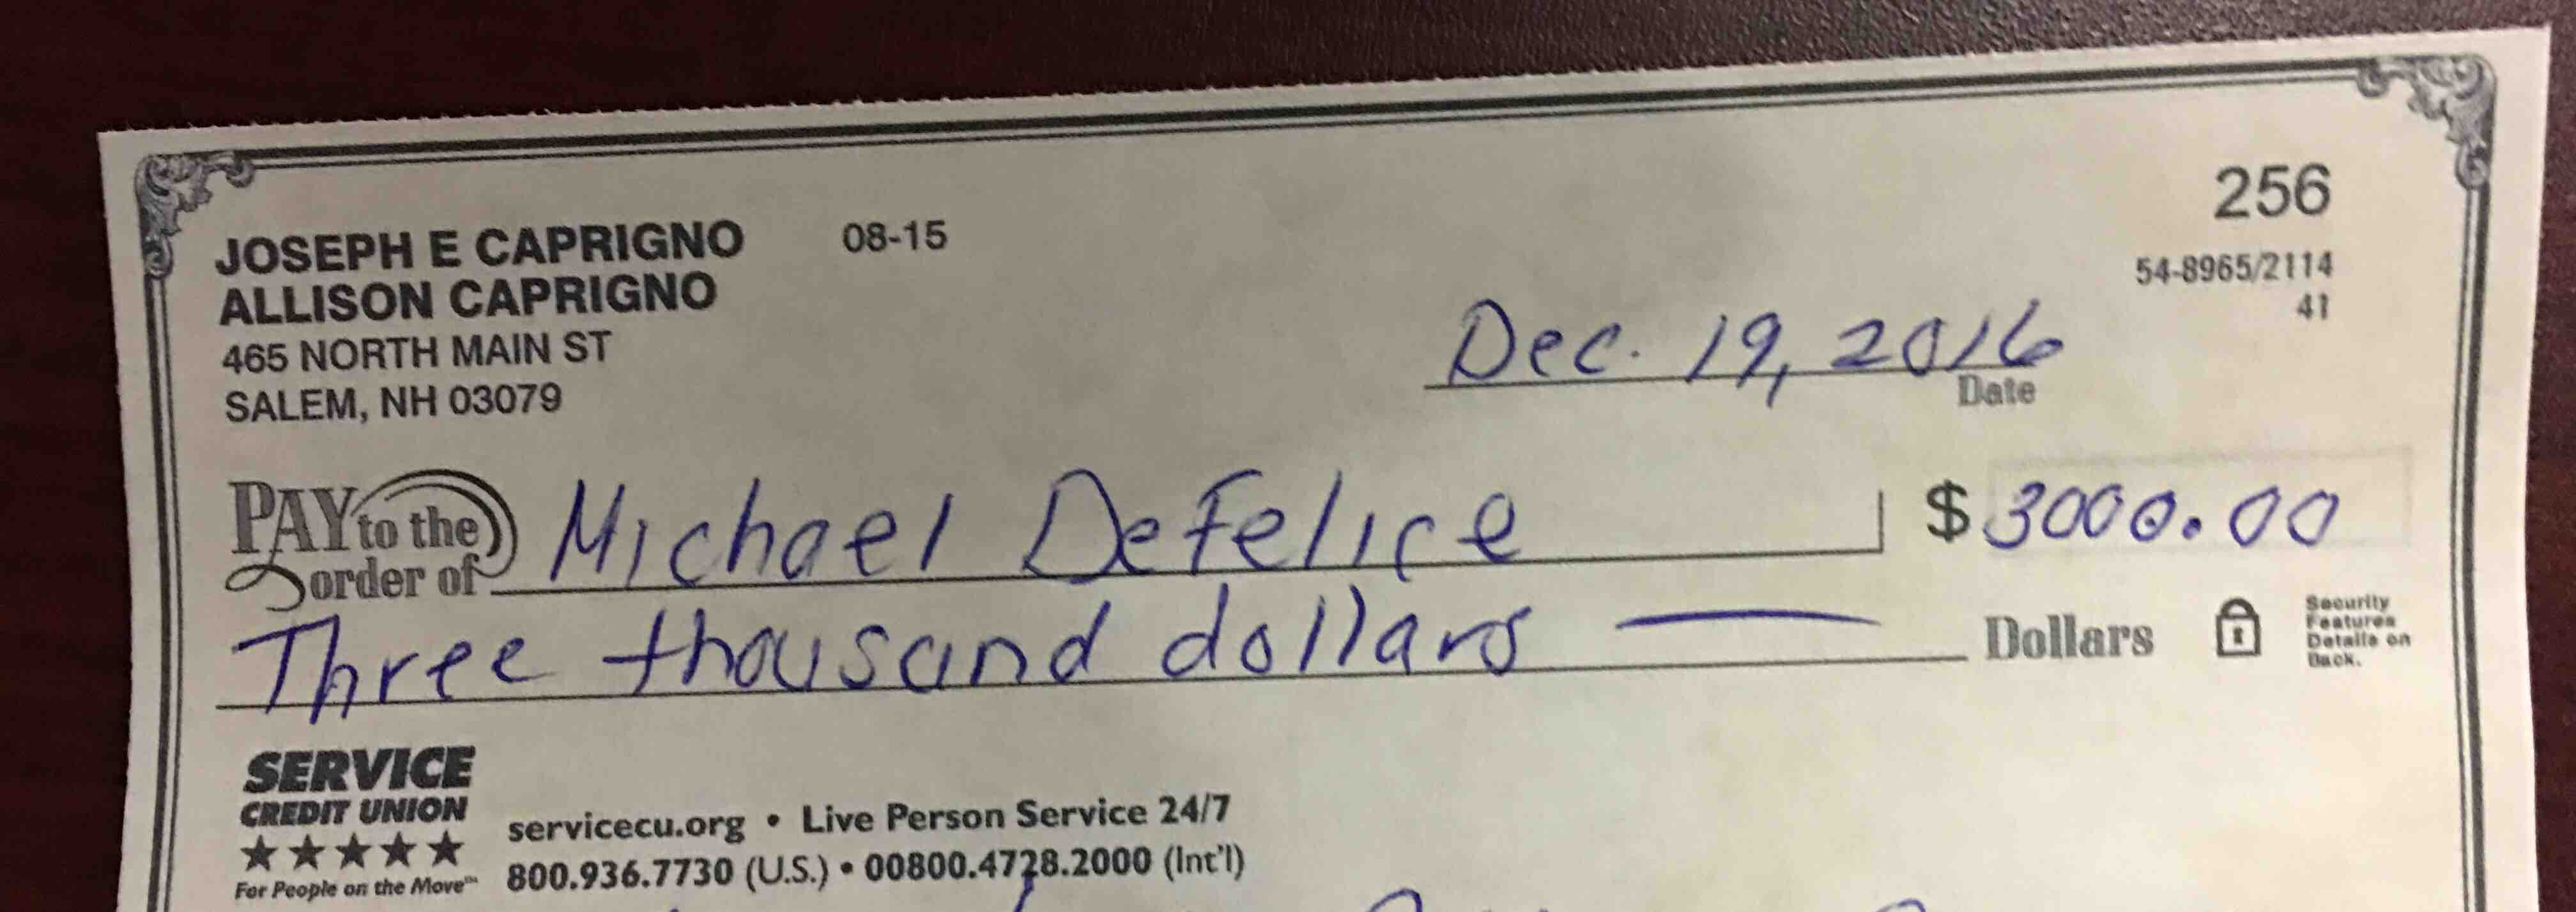 defelice family fund by allison downing caprigno gofundme another check issued hopefully they can an affordable apartment soon to put this to good use